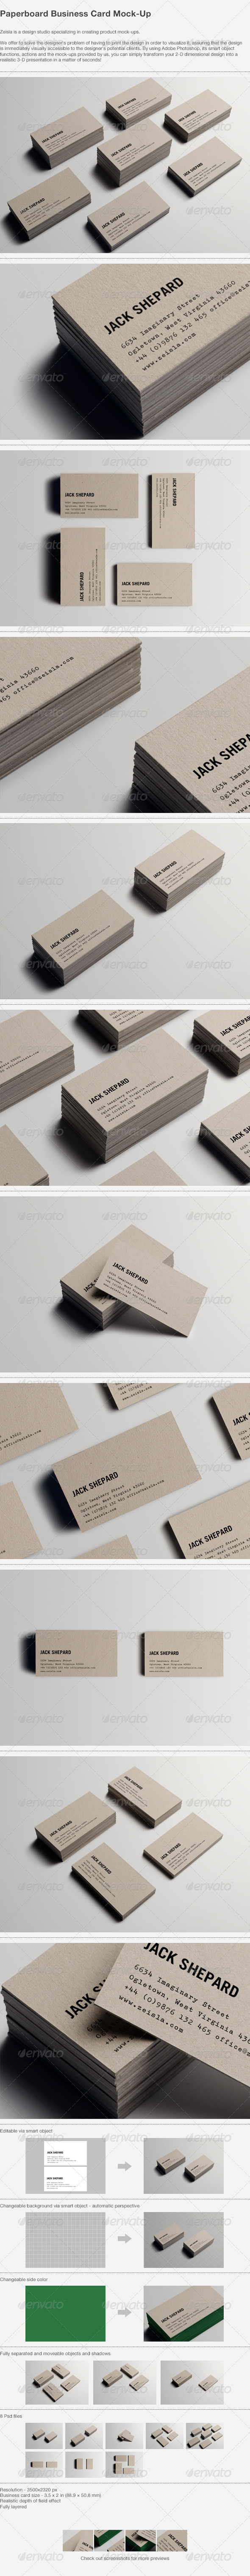 Business card printing roodepoort image collections card design business card express krugersdorp choice image card design and business cards printing roodepoort gallery card design reheart Image collections